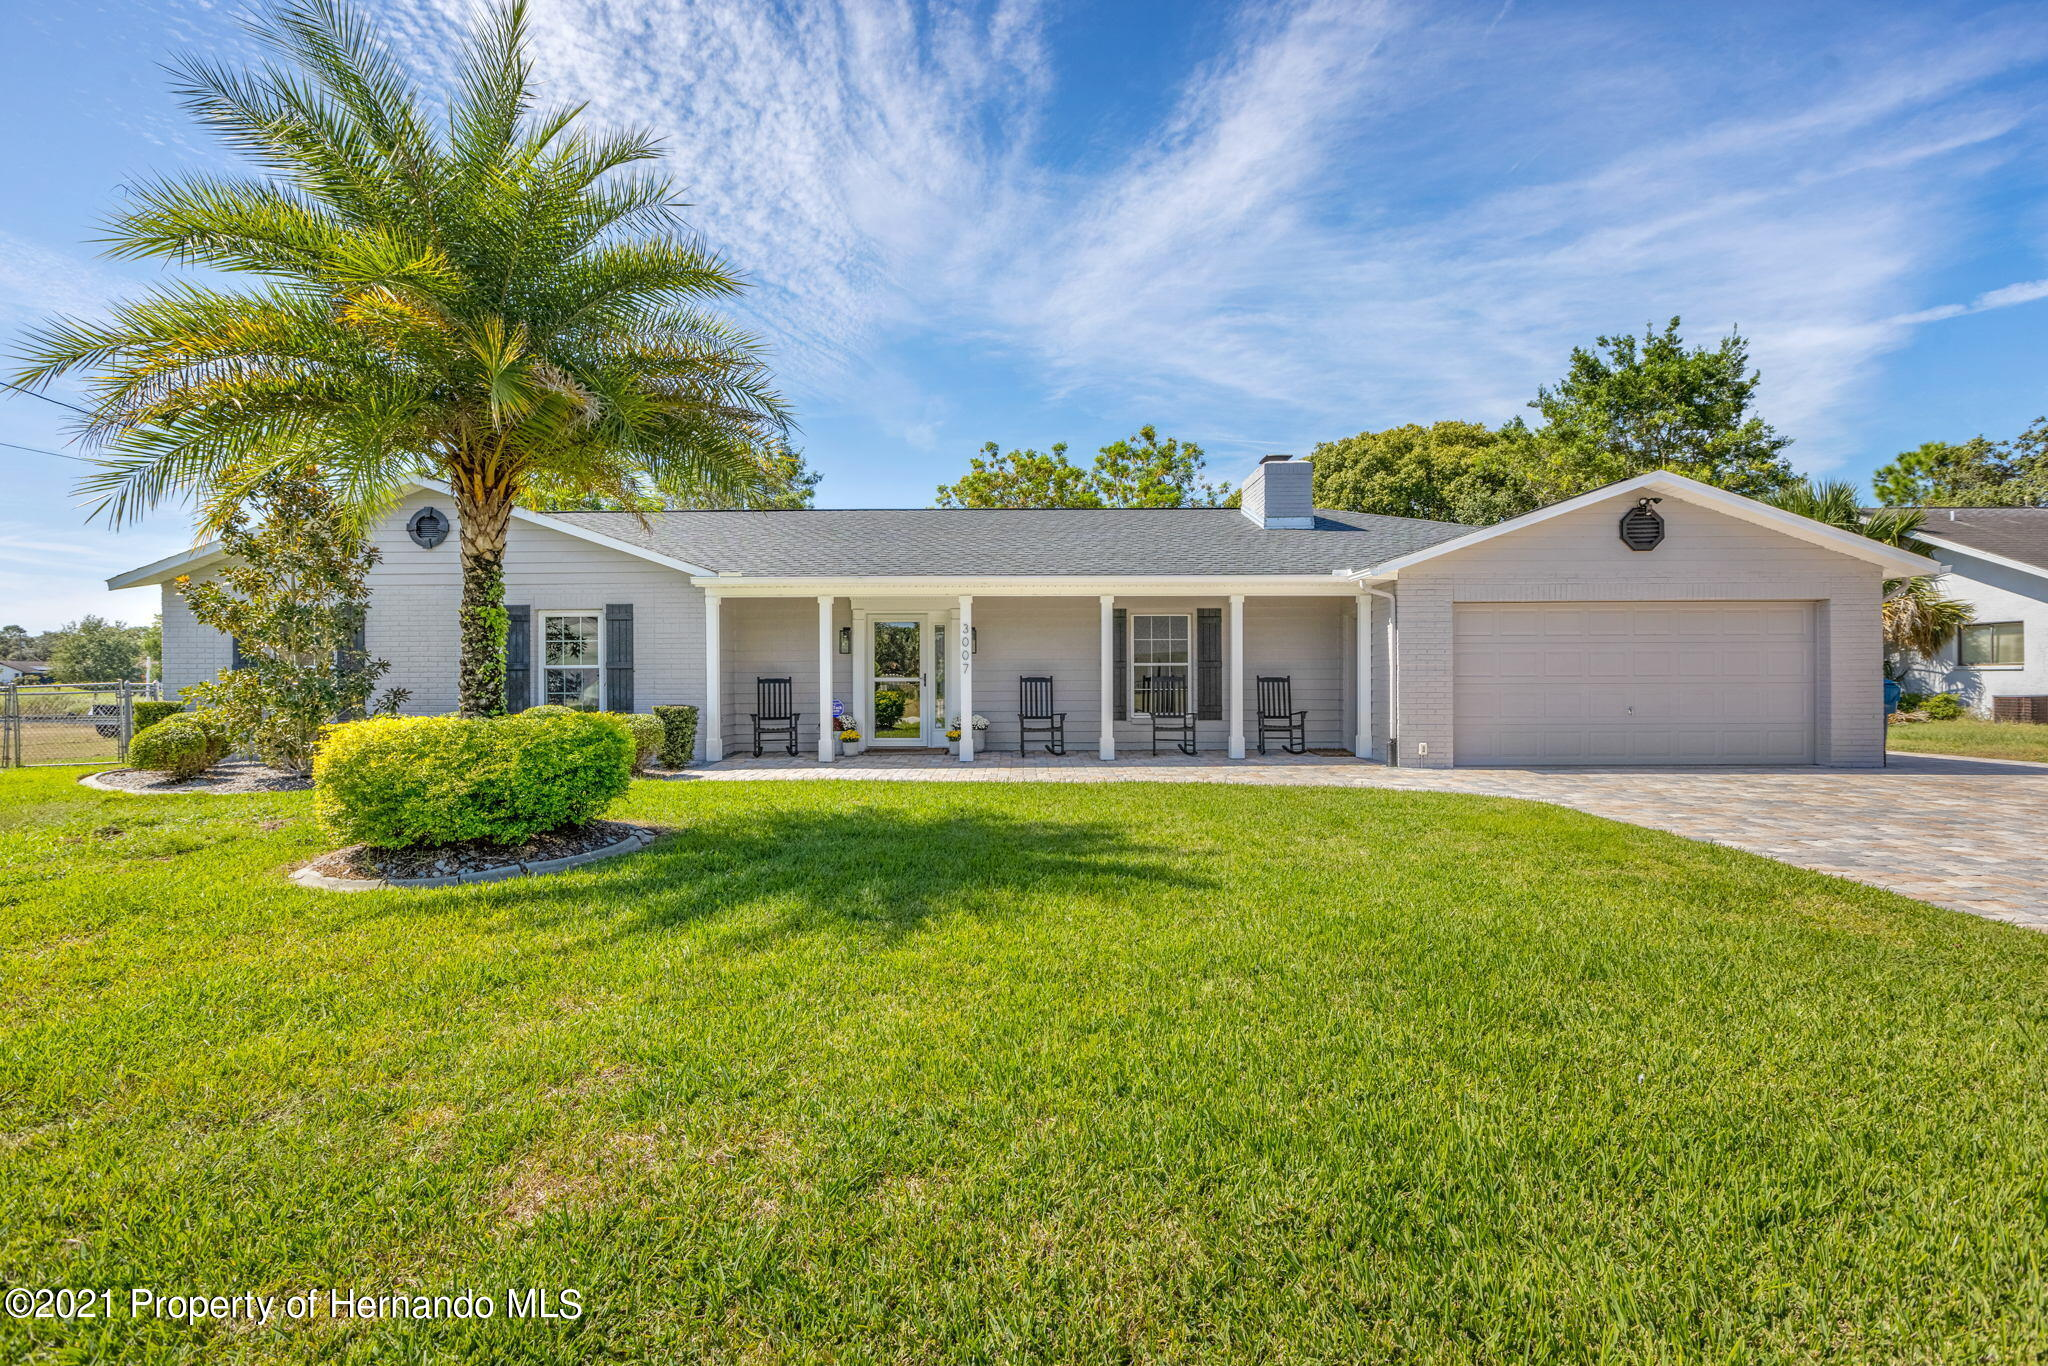 Details for 3007 Bayshore Drive, Spring Hill, FL 34608